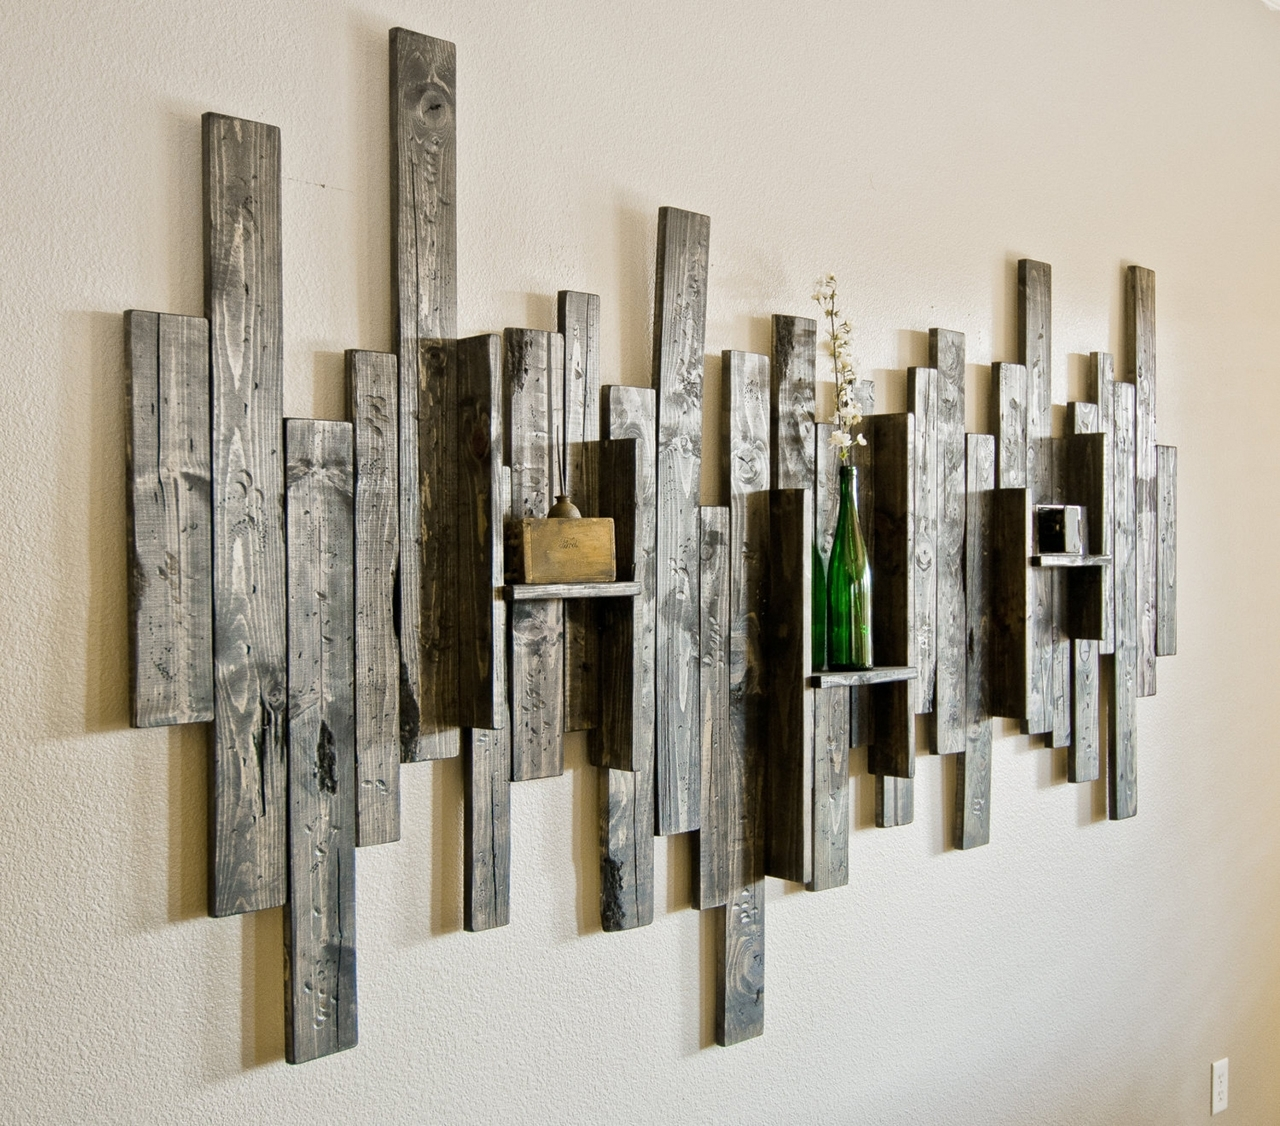 Crafty Inspiration Rustic Wood Wall Decor Fresh Design Shop Houzz With Regard To Current Houzz Abstract Wall Art (View 5 of 20)